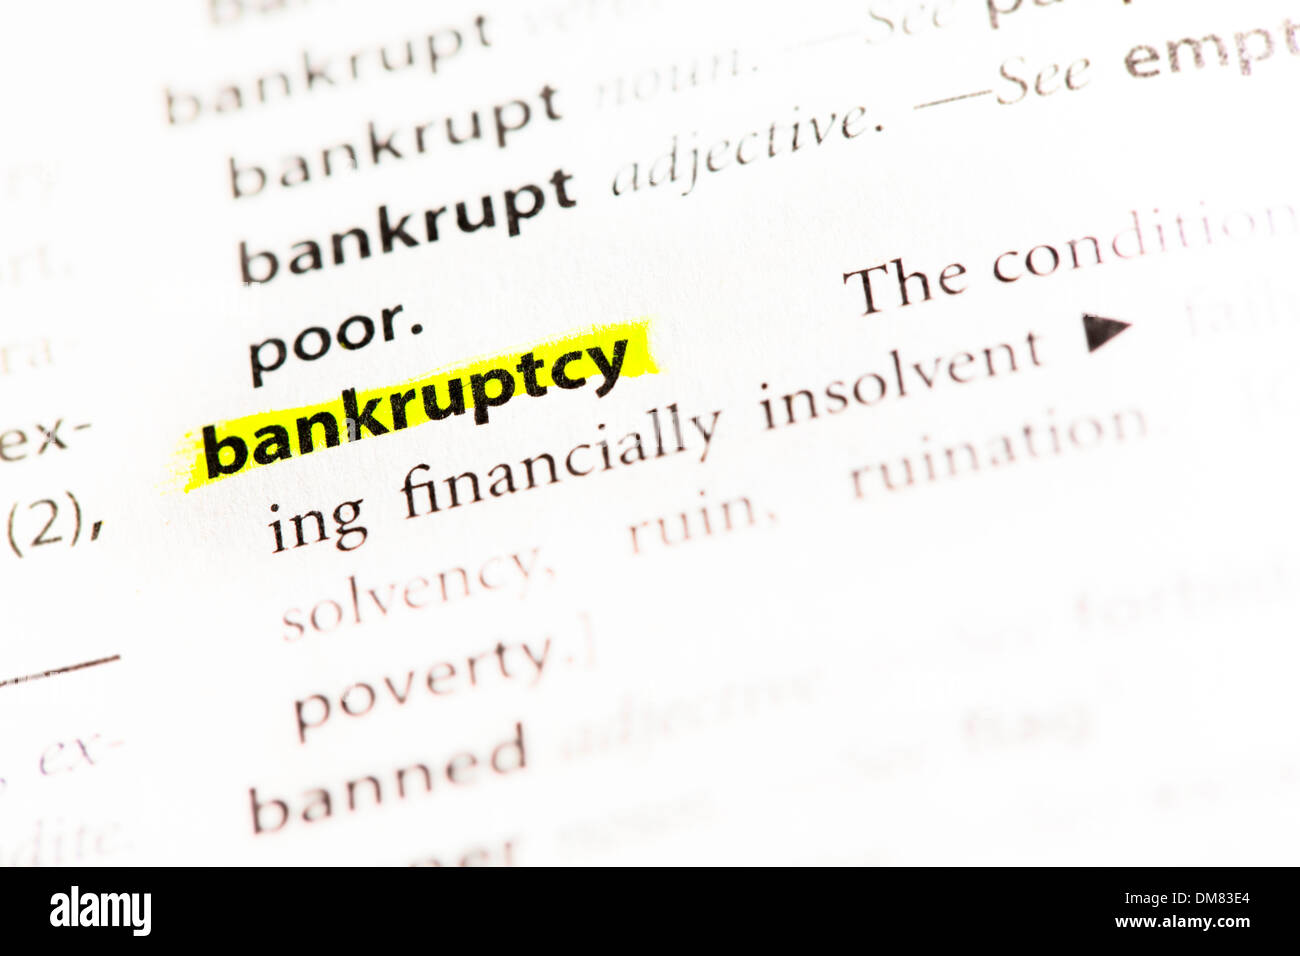 'Bankruptcy' Definition highlighted - Stock Image